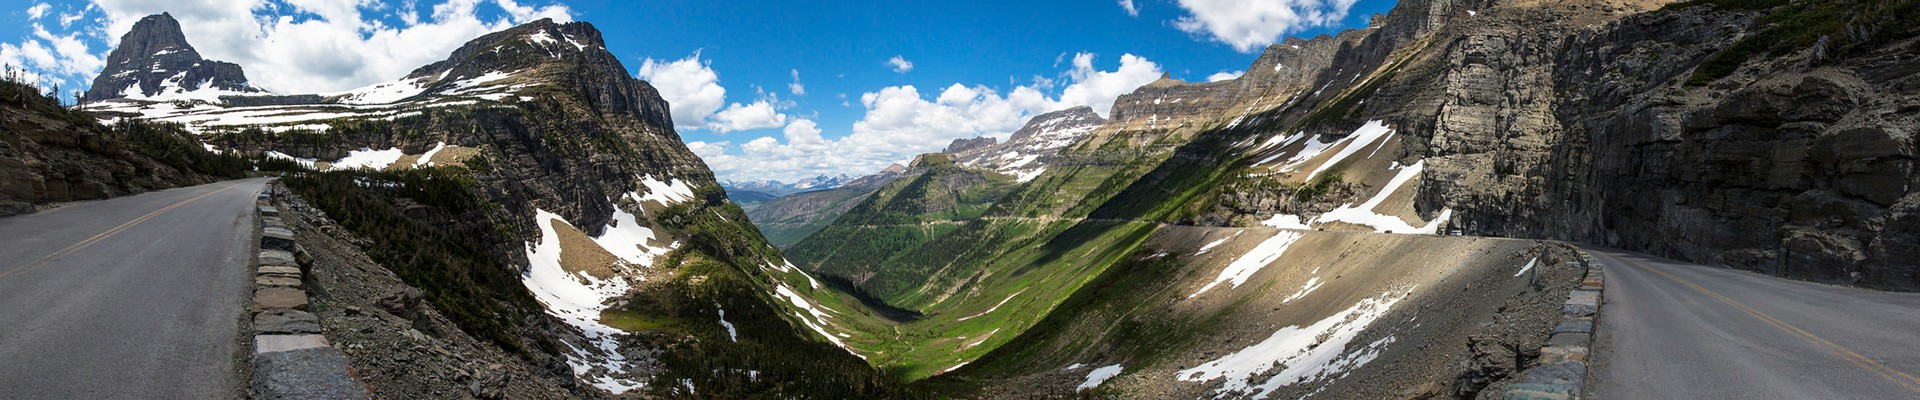 Panoramic view of Going To The Sun Road in Glacier National Park